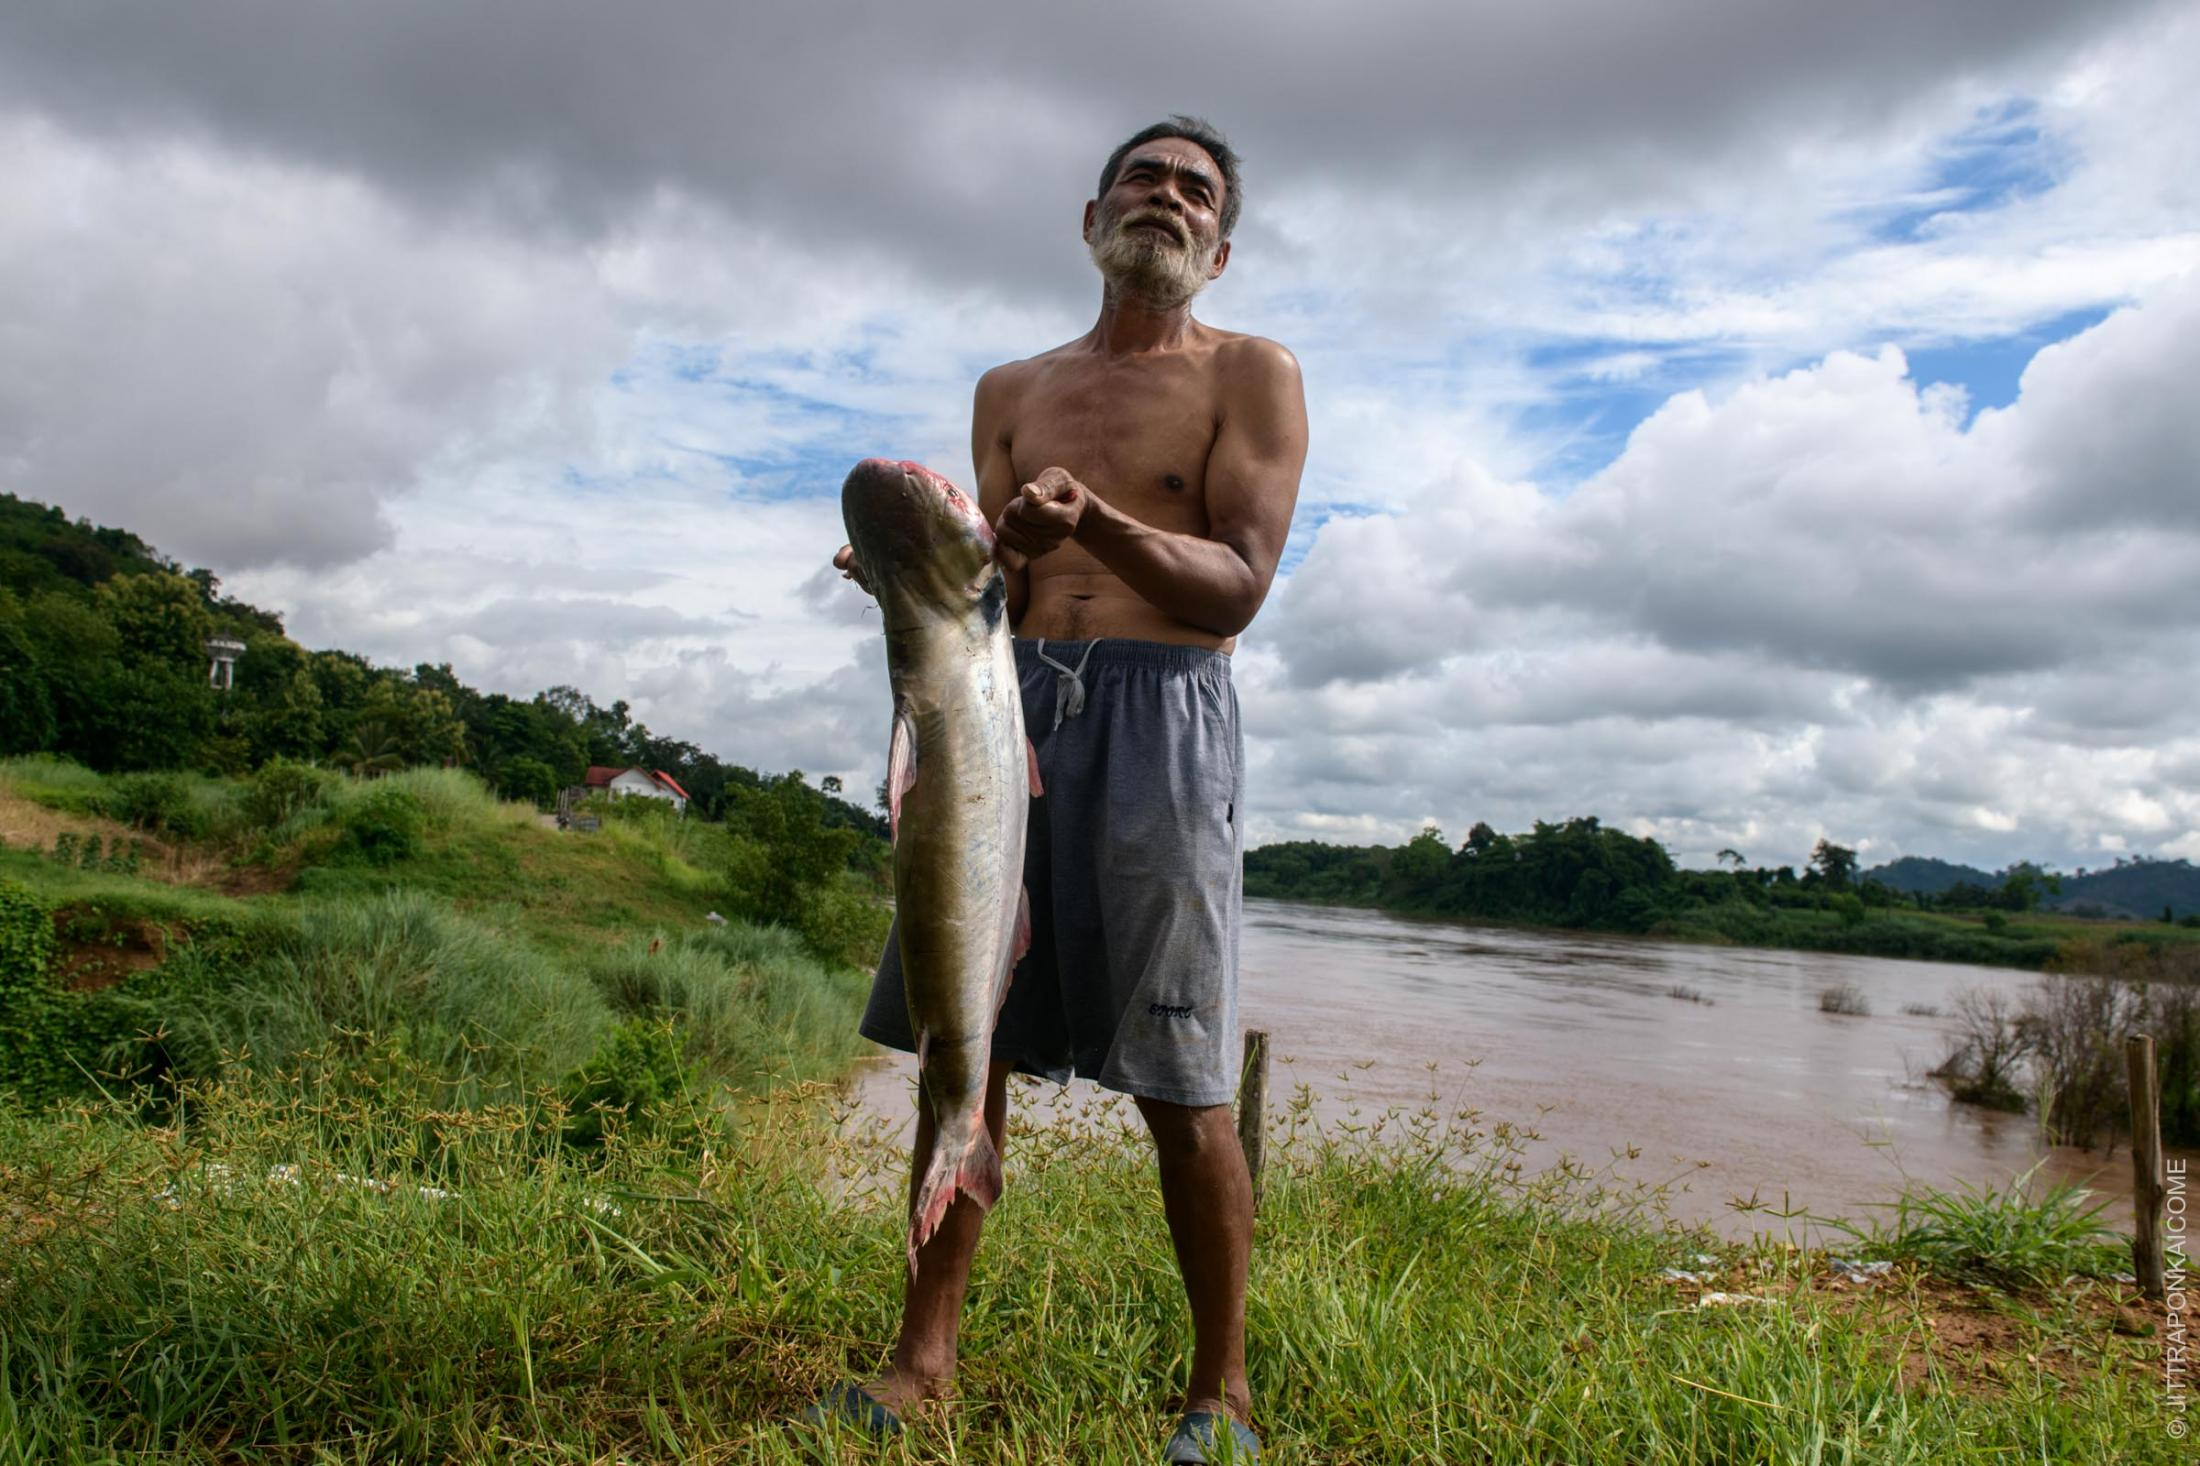 53 years old fisherman, Adul Dulipee, caught 12 kilograms of black-eared catfish. Nowadays, the population of this fish is reducing due to the unusually low water levels and tidal activity downstream, preventing this specie from laying eggs. Before the dam was built on the Mekong River, fishermen could catch this amount of fish at least once a week. Sales which allowed them to gain sufficient income. As a direct result of the ecological changes to the riverine ecosystem caused directly by the dams, there are fewer fish to catch. Hence, they need to find alternative jobs to supplement their incomes, outside of their expertise, and locale. In Nong Khai, Thailand – August 2020.